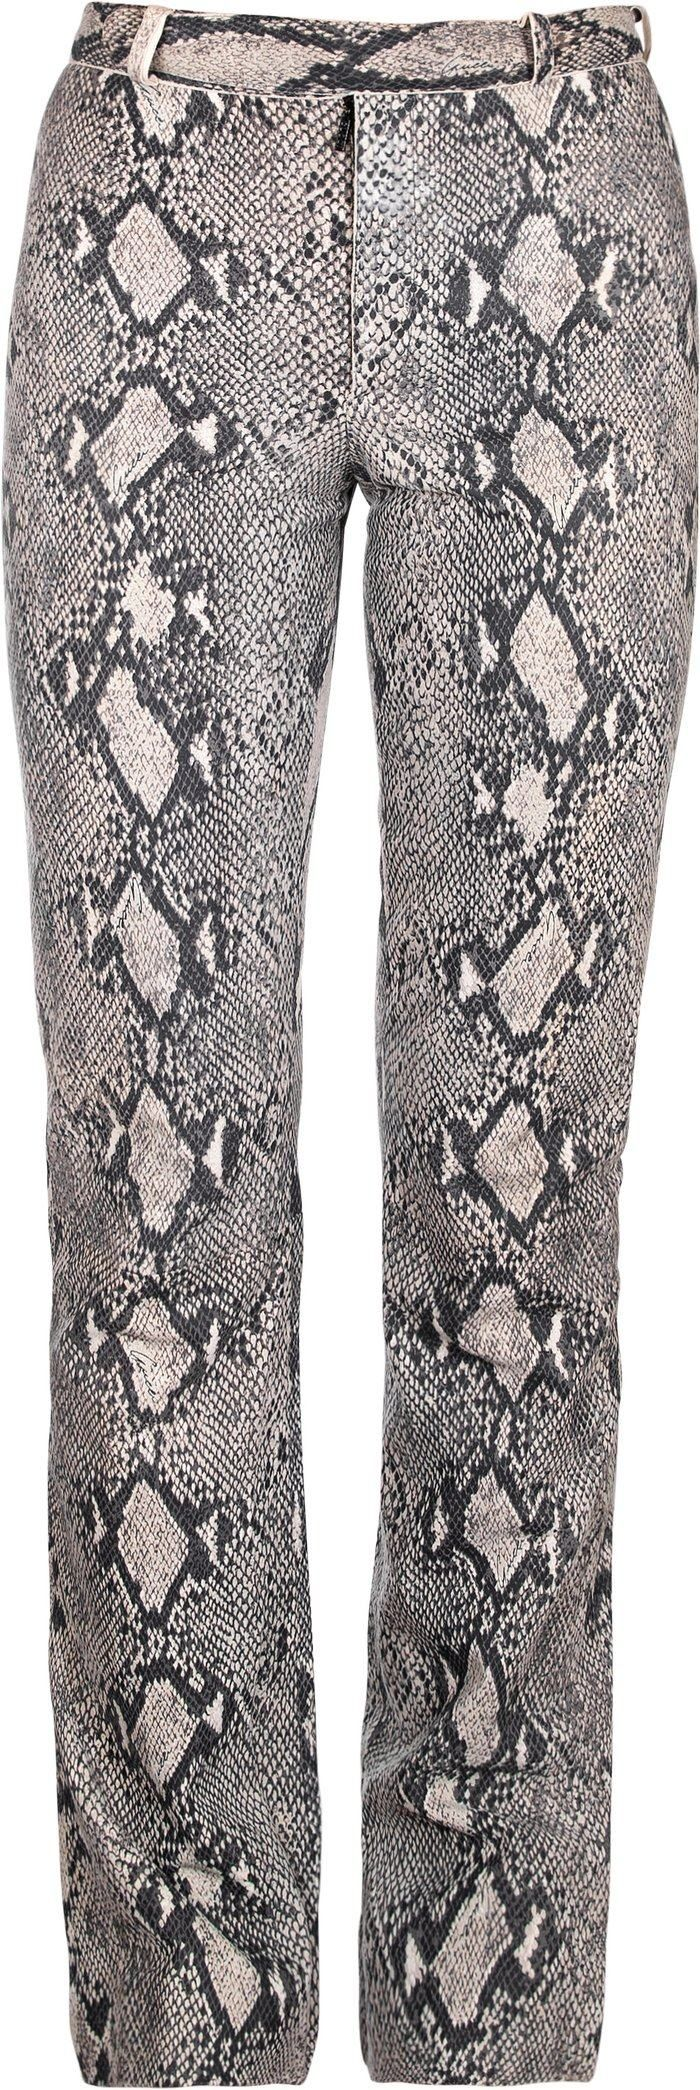 Kim Kardashian donning Straight fit grey snakeskin printed trousers with a snakeskin fabric